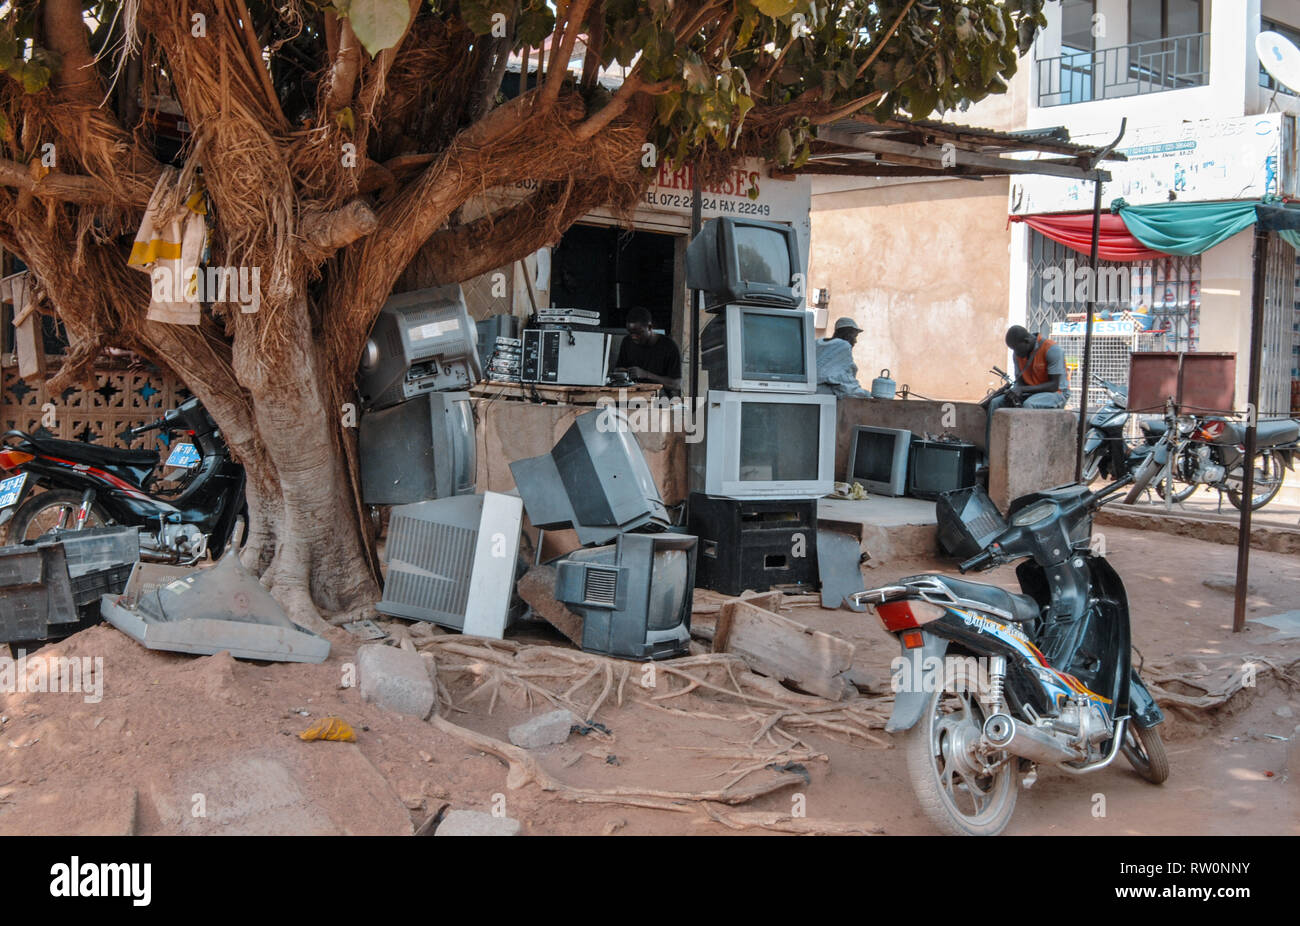 A pile of old tvs (television sets) in front of a tv repair shop in Bolgatanga, Ghana, West Africa - Stock Image